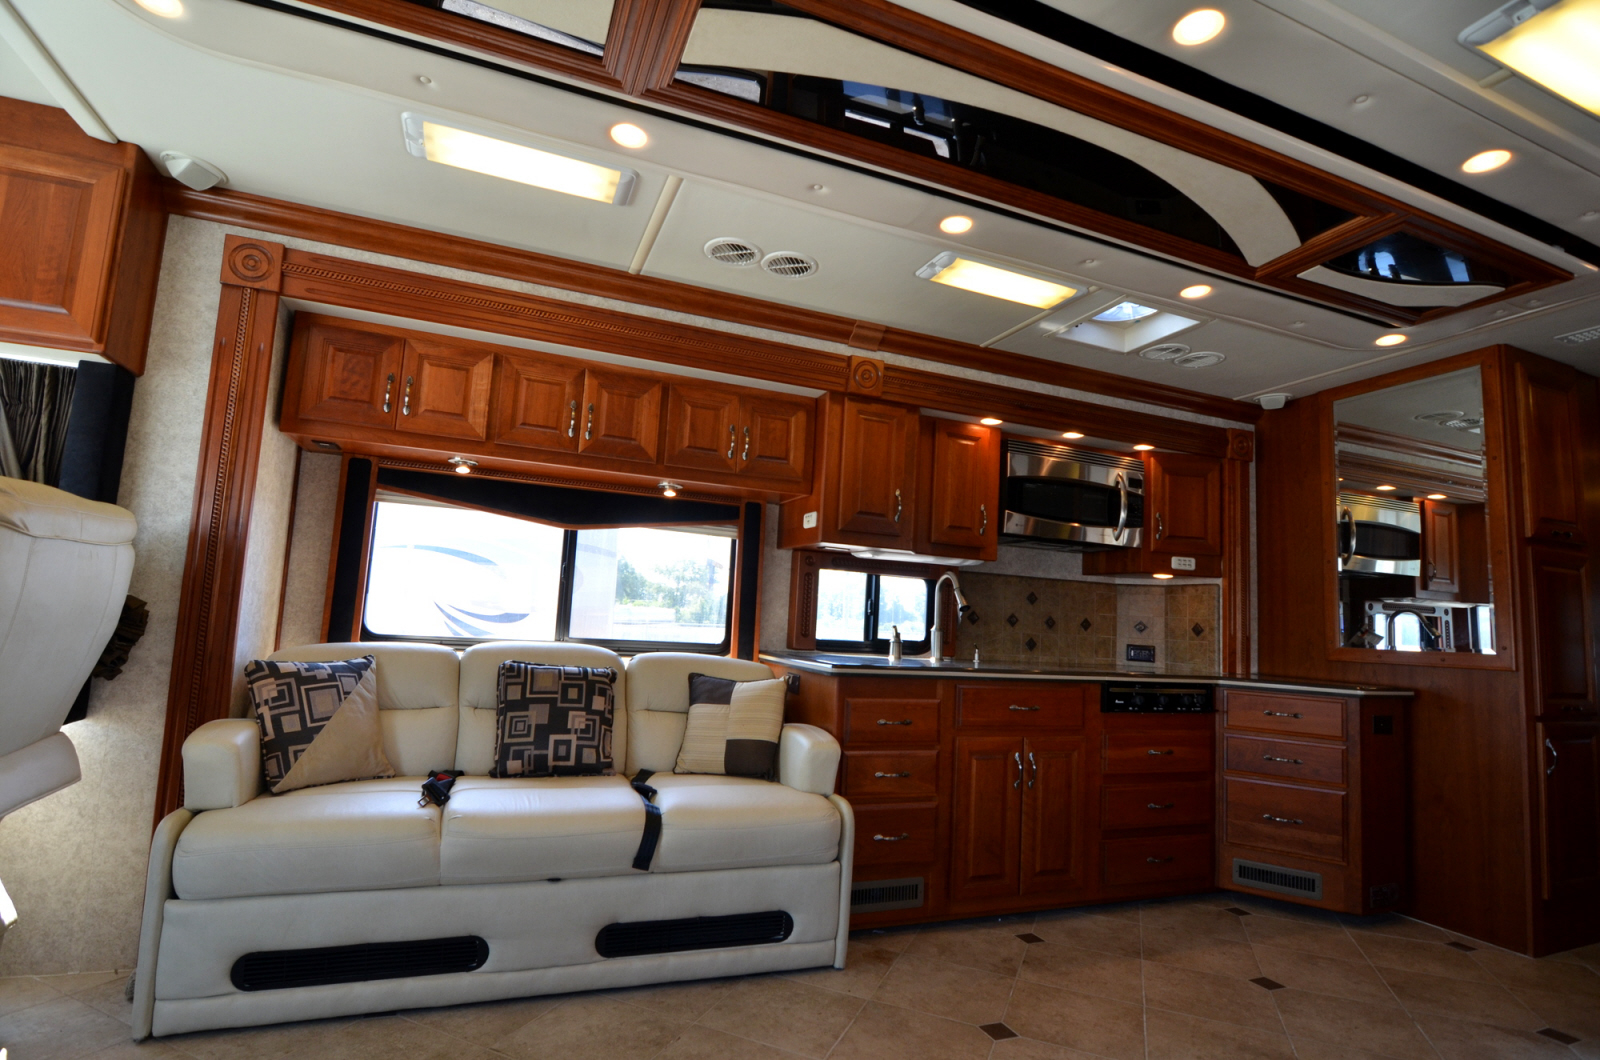 Cool RV Parts 2003 MONACO SIGNATURE MOTORHOME FOR SALE RVs Campers